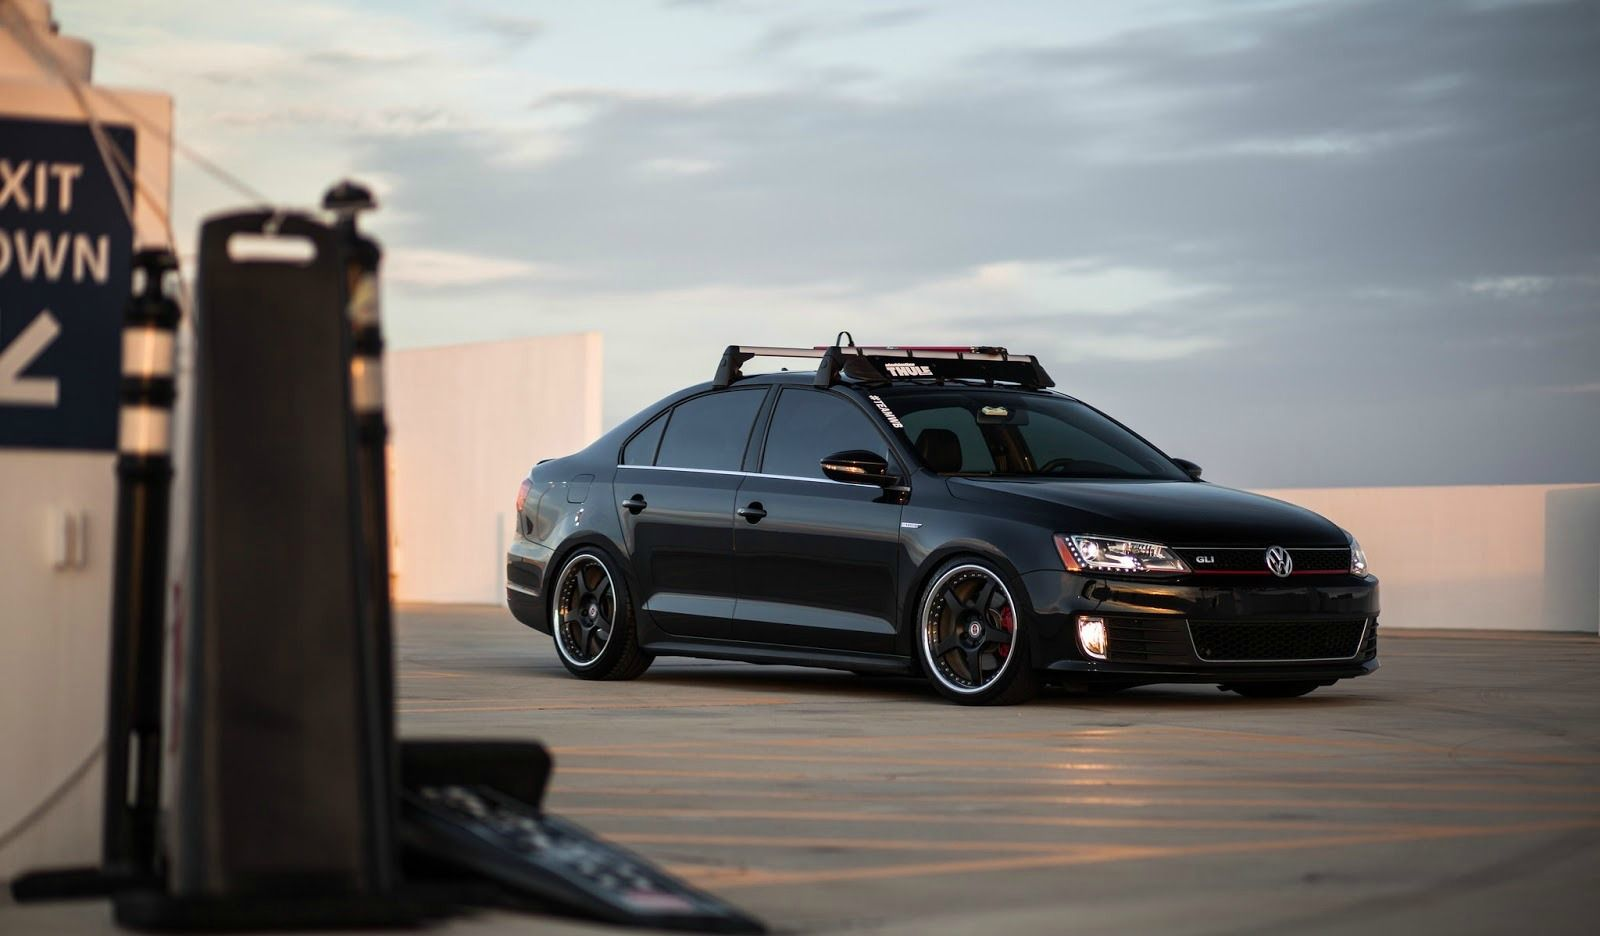 This Custom Volkswagen Gli Is Ready To Rumble And We Couldn T Be More In Love Machinecrushmonday Mcm Vdublove Volkswagen Jetta Volkswagen Vw Jetta